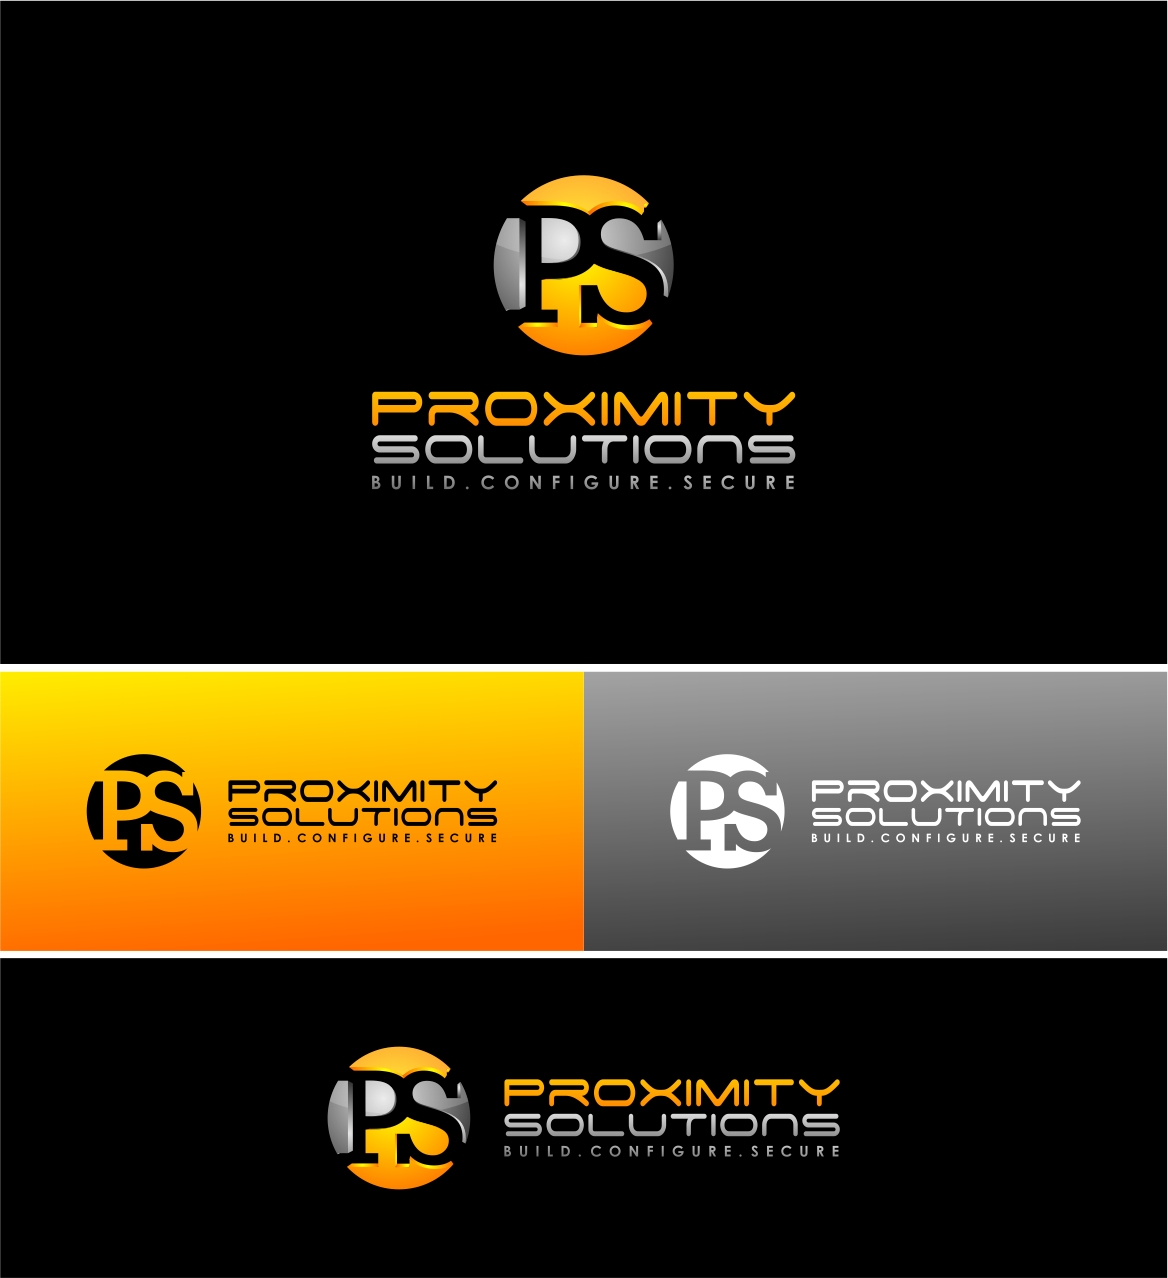 Logo Design by haidu - Entry No. 34 in the Logo Design Contest New Logo Design for Proximity Solutions.